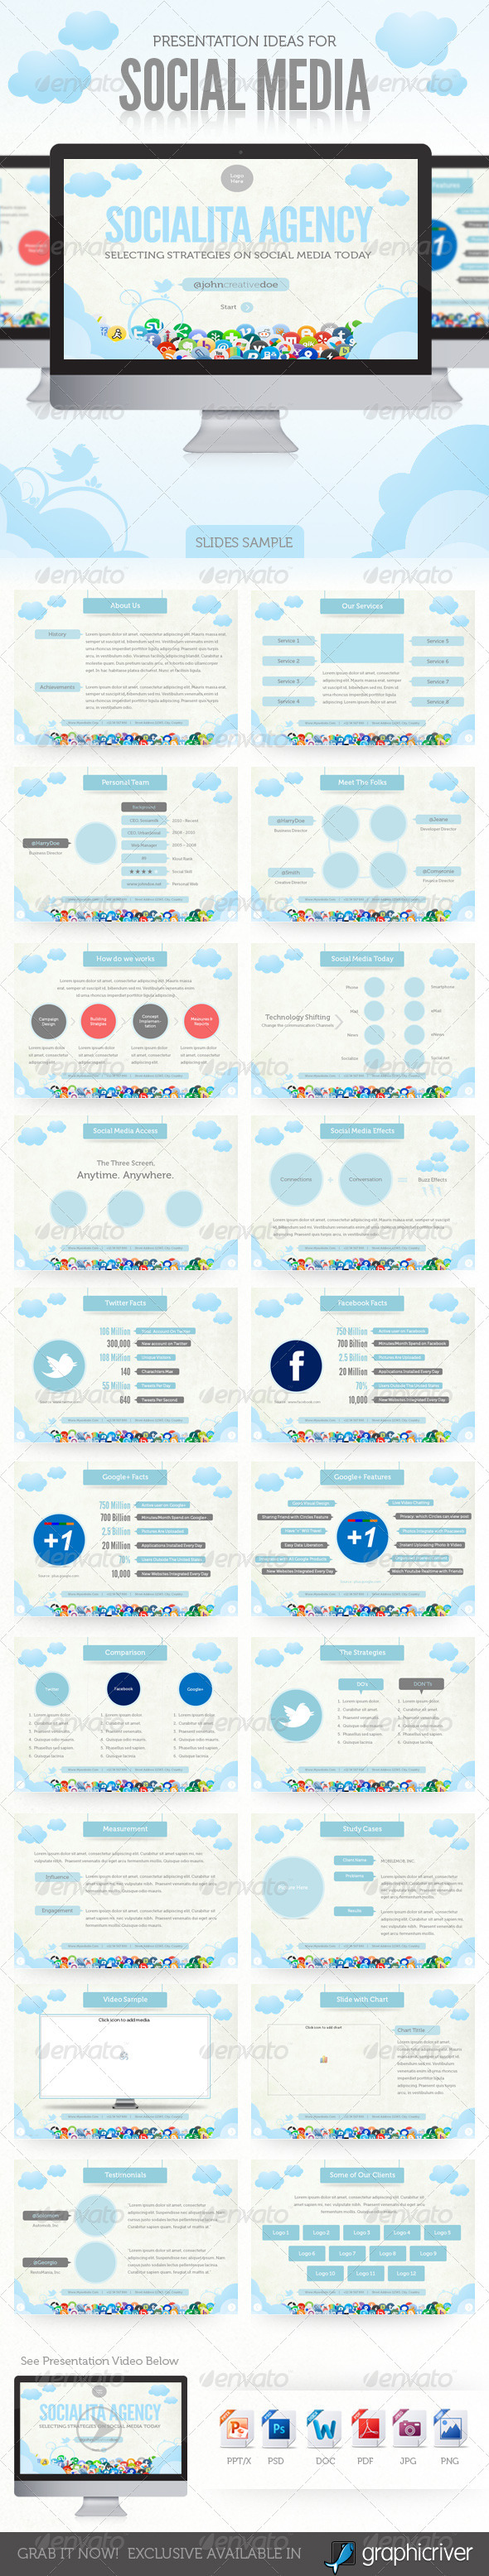 Social Media Presentation Template - Powerpoint Templates Presentation Templates